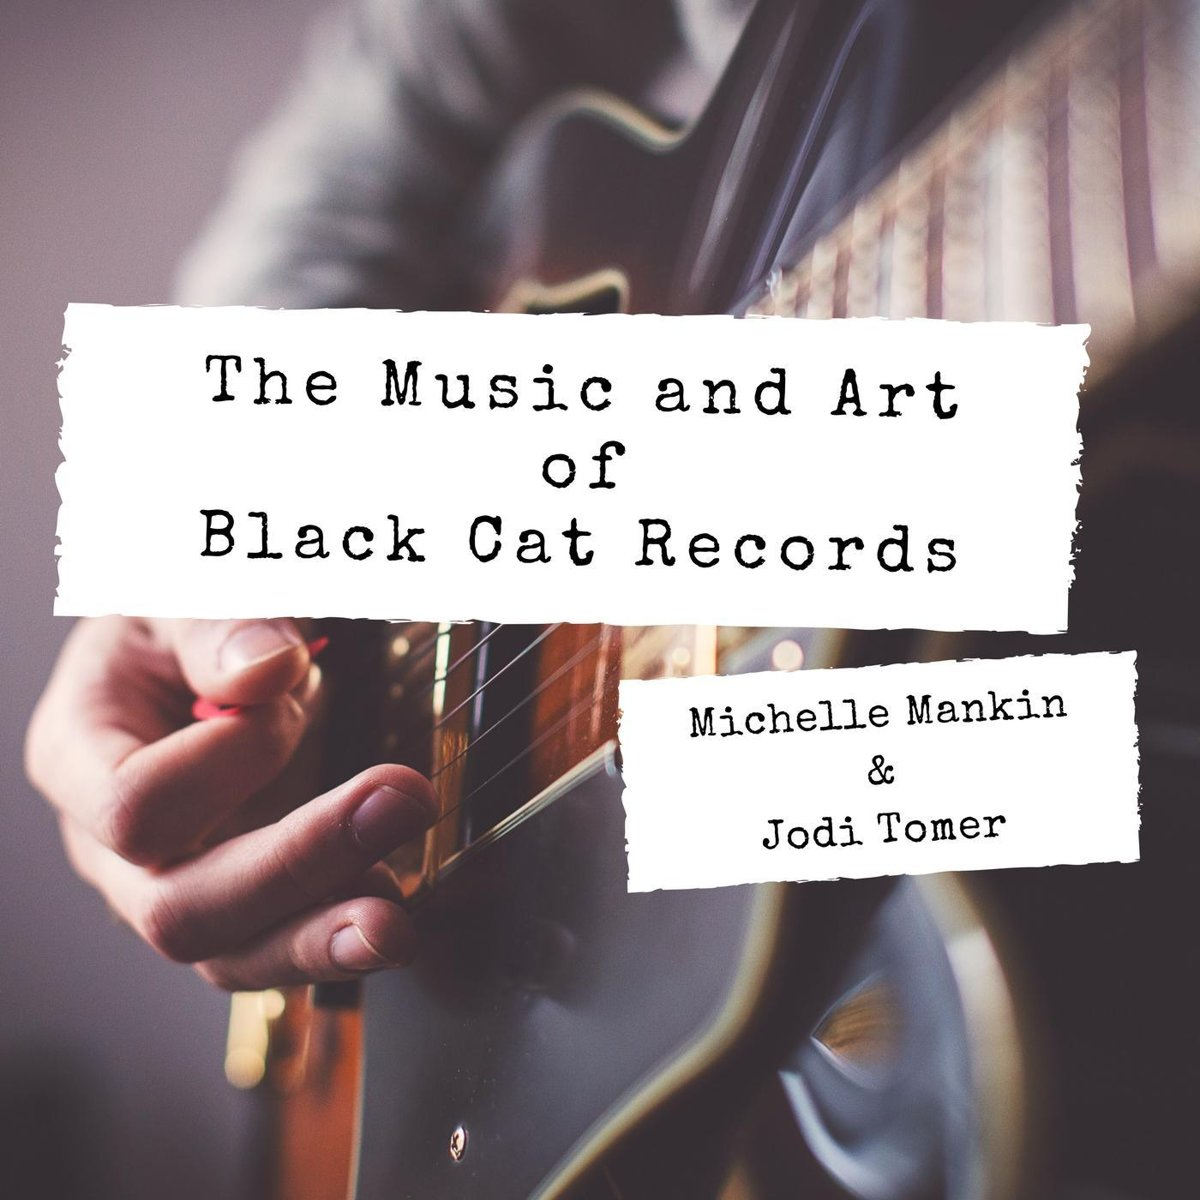 The Music and Art of Black Cat Records